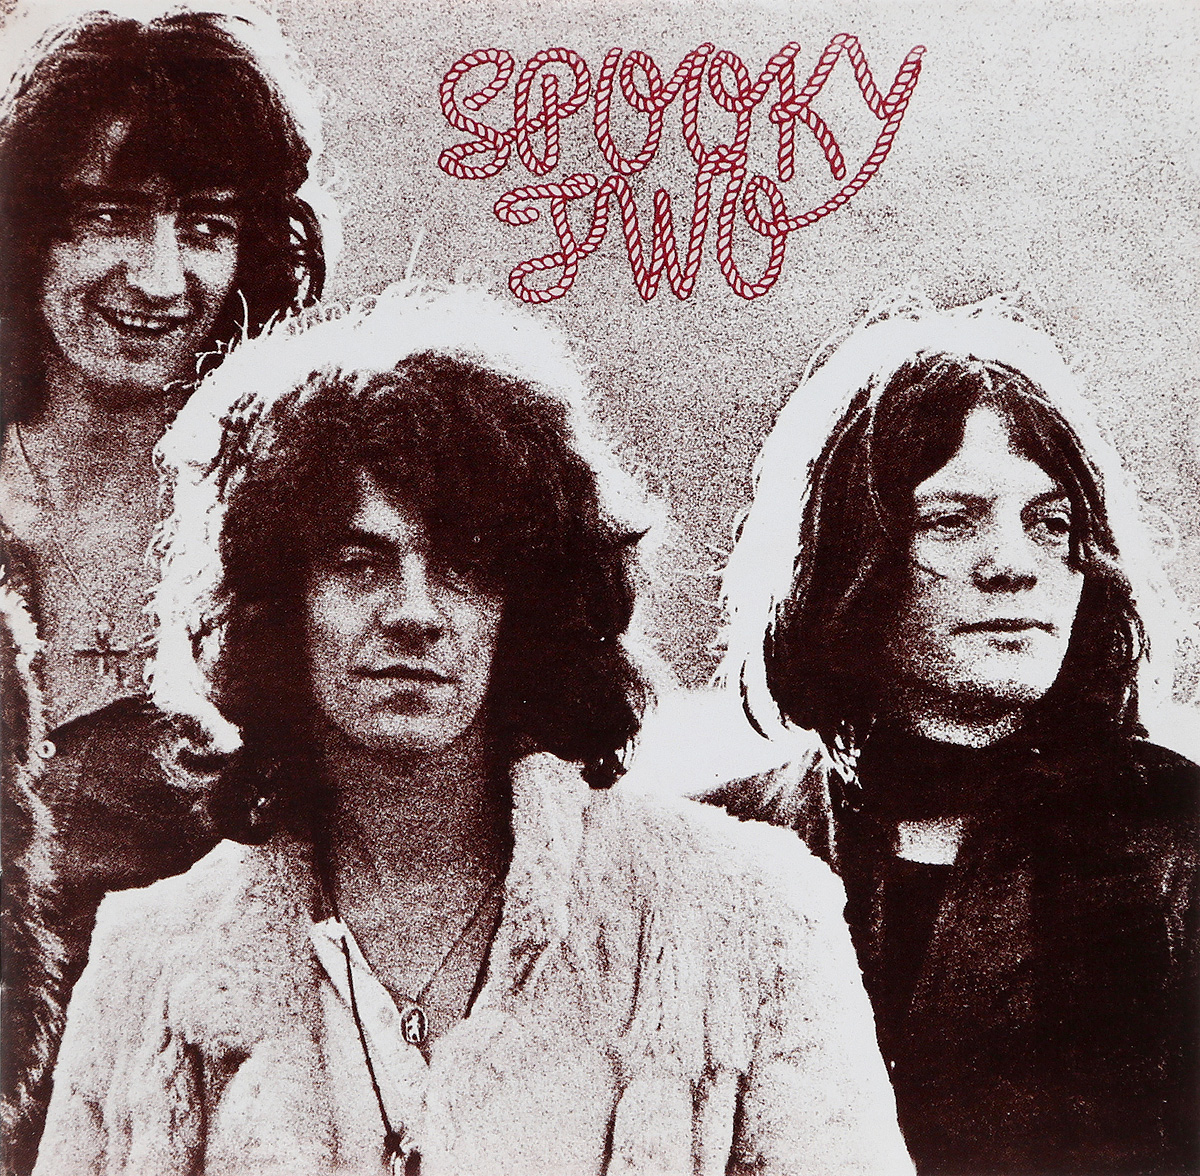 Spooky Tooth Spooky Tooth. Spooky Two spooky creepy boston